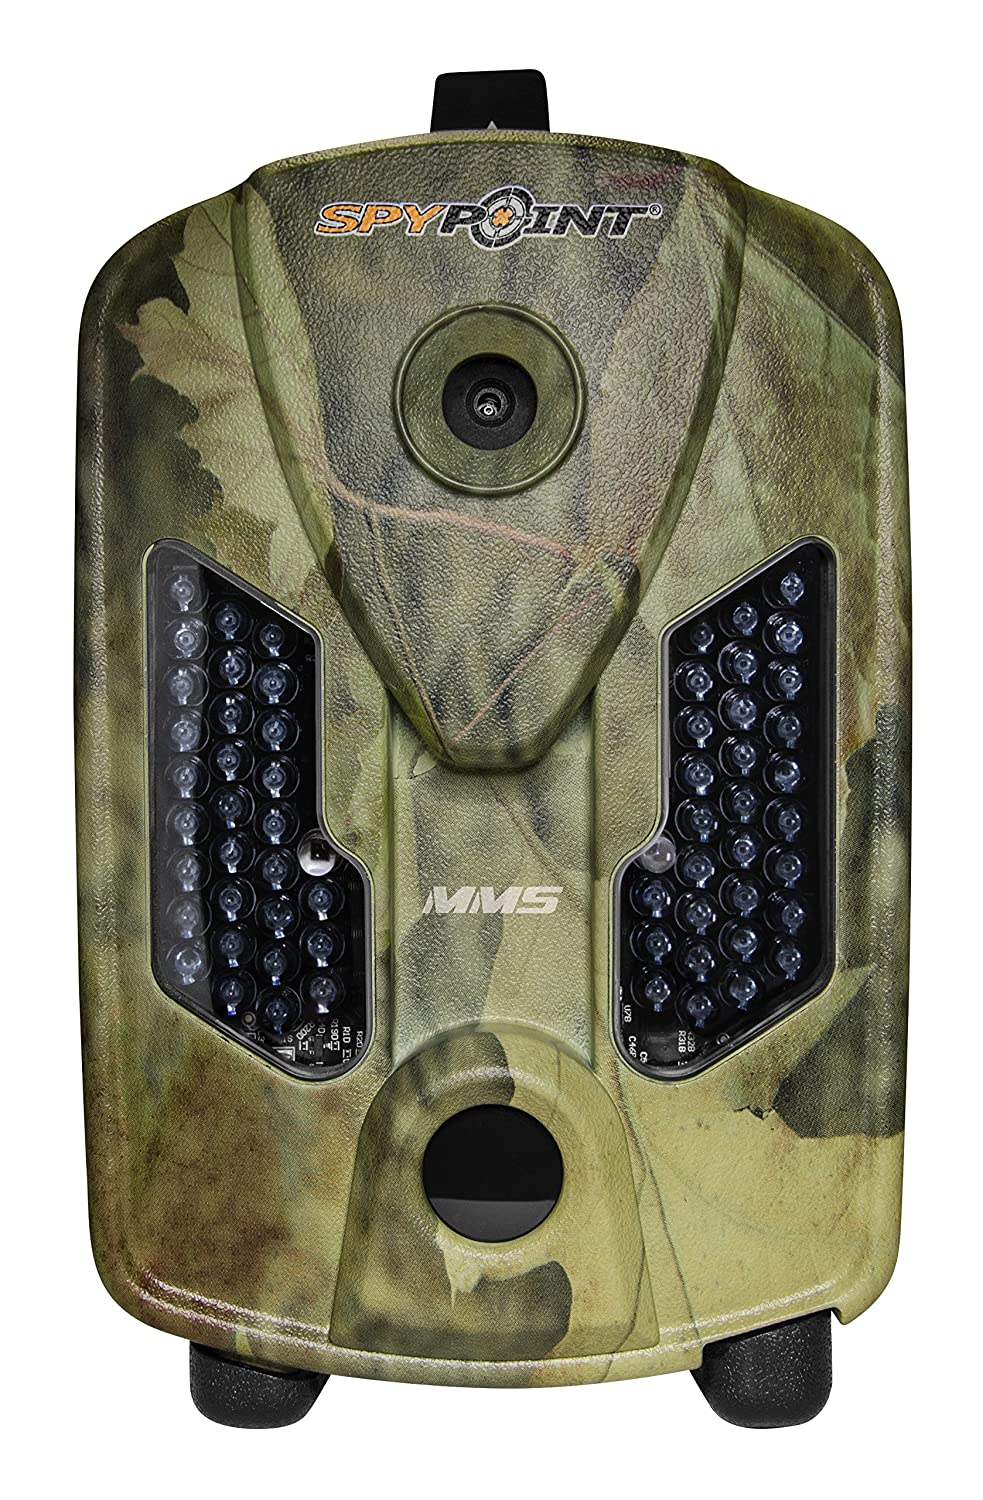 【超歓迎された】 1007245 1007245 Spypoint MMS Trail camera-10mp camera-10mp hd-camo hd-camo B01E6AN5V0, 日本ネット通販センター:8a874671 --- a0267596.xsph.ru